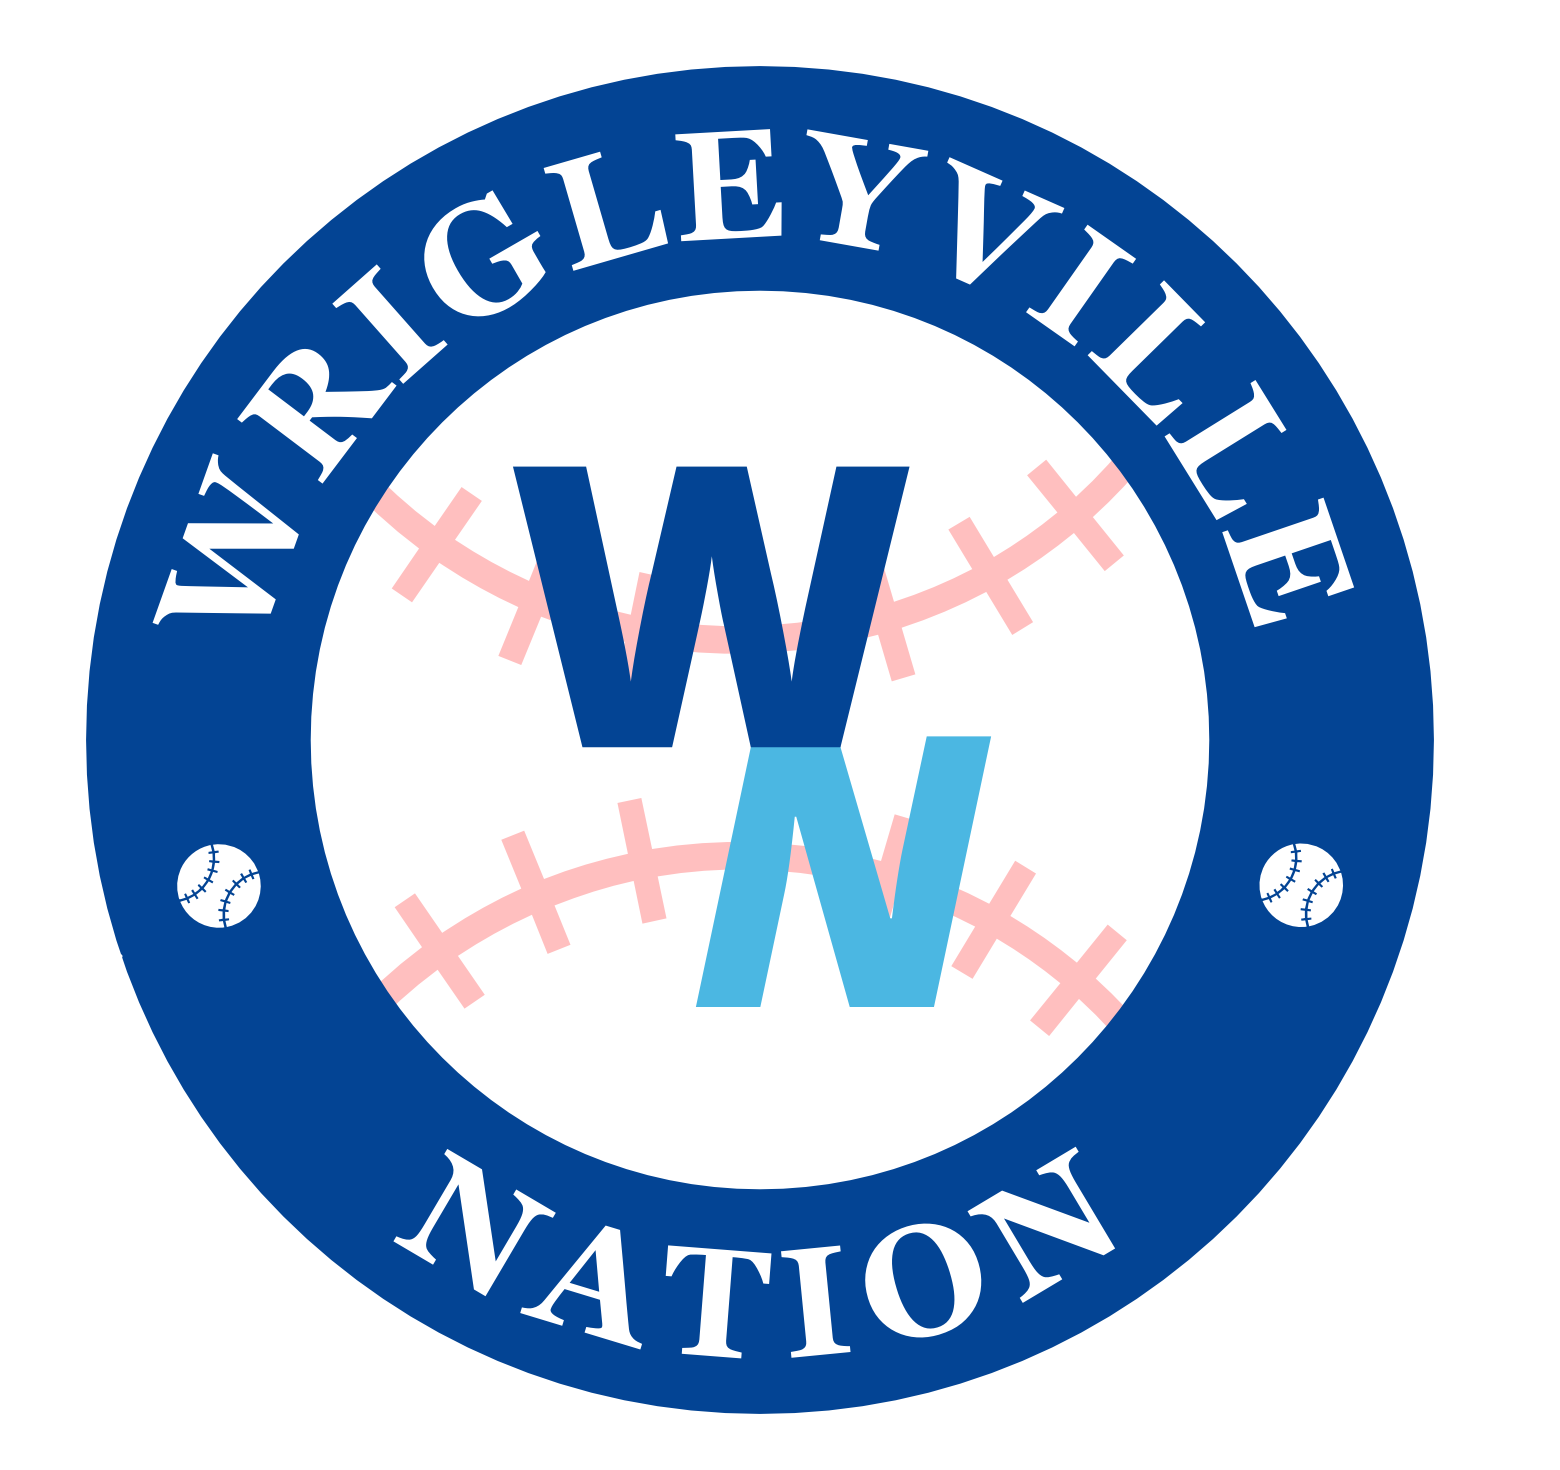 Wrigleyville Nation Ep 205 - Guest: Paul Noonan, Cubs & Brewers Discussion, Trade Deadline Anticipation show art